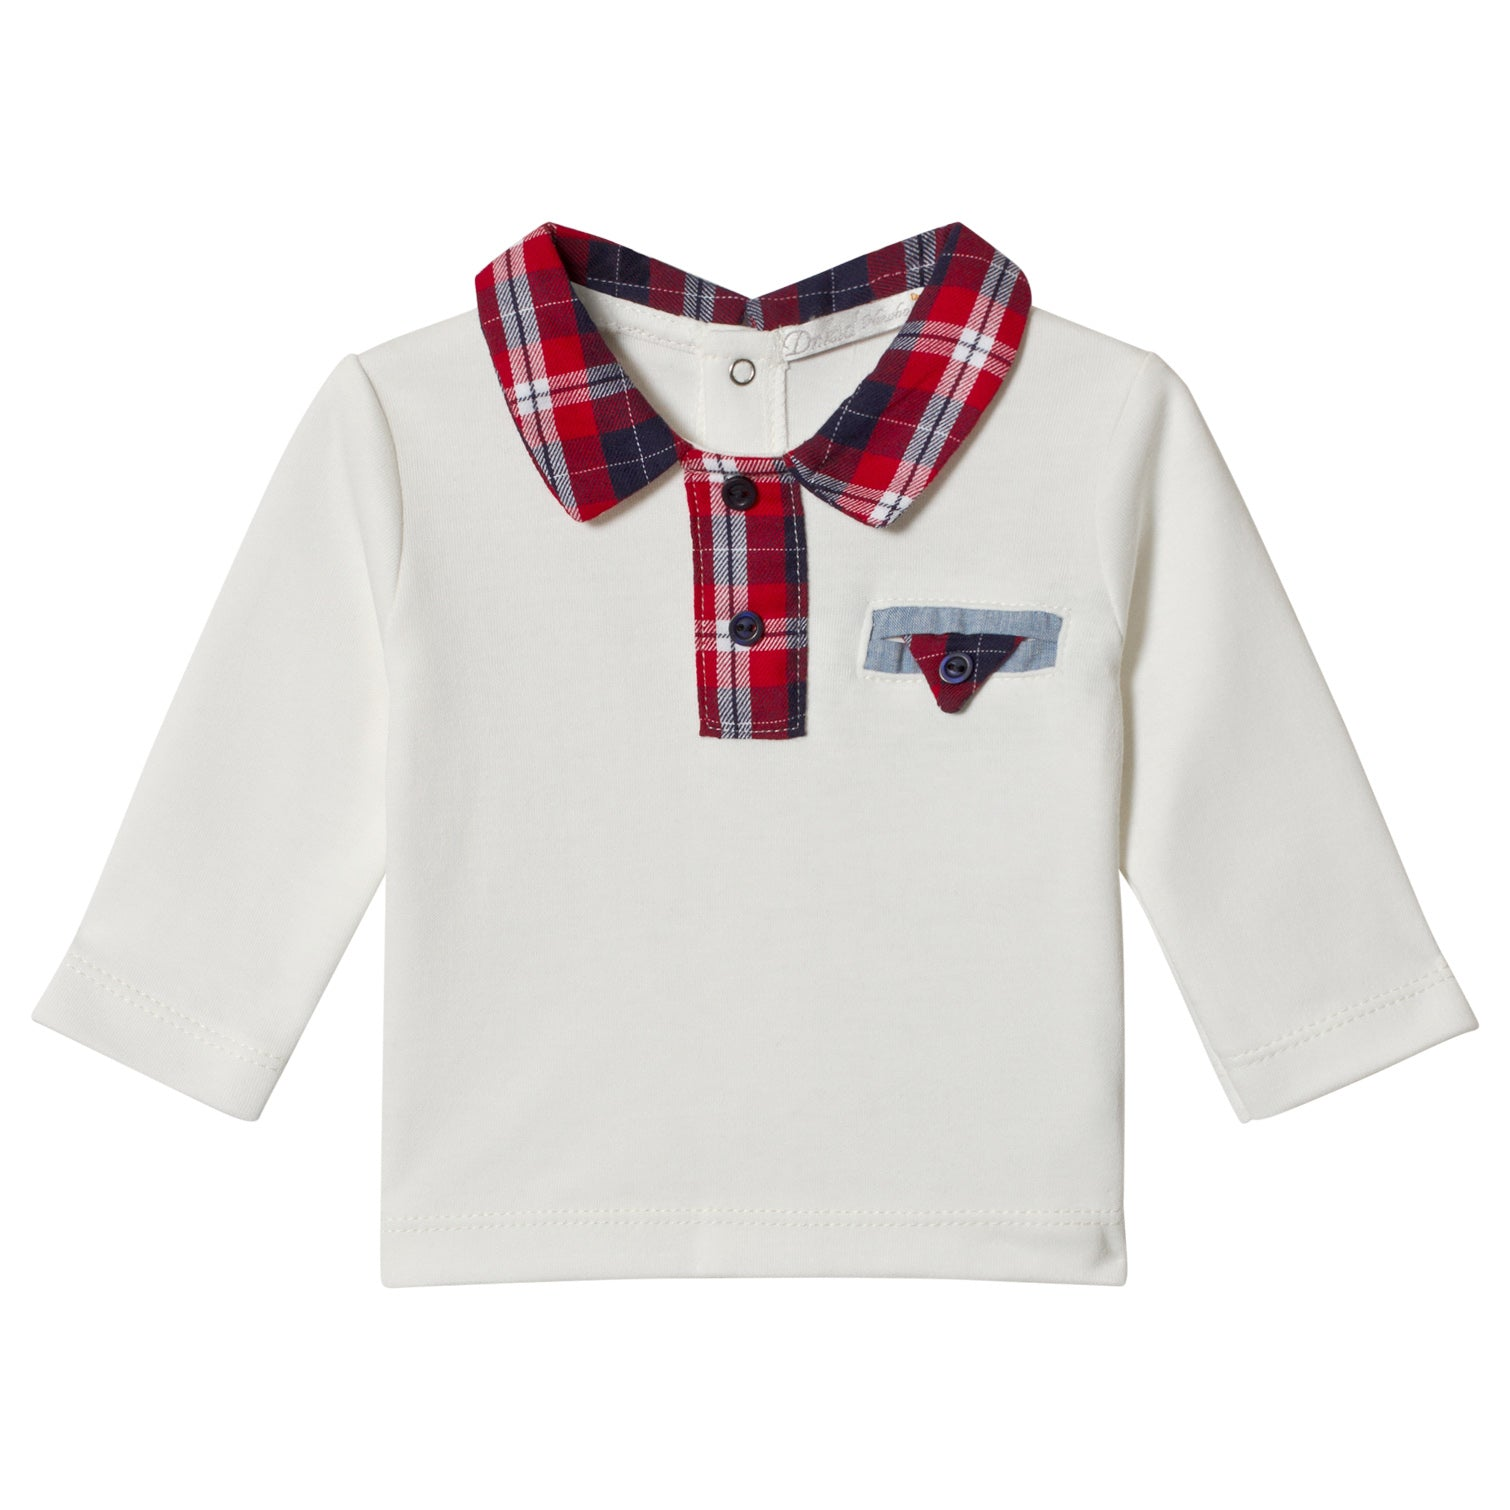 Dr. Kid Boys Red & Blue Tartan Collar Jersey Shirt